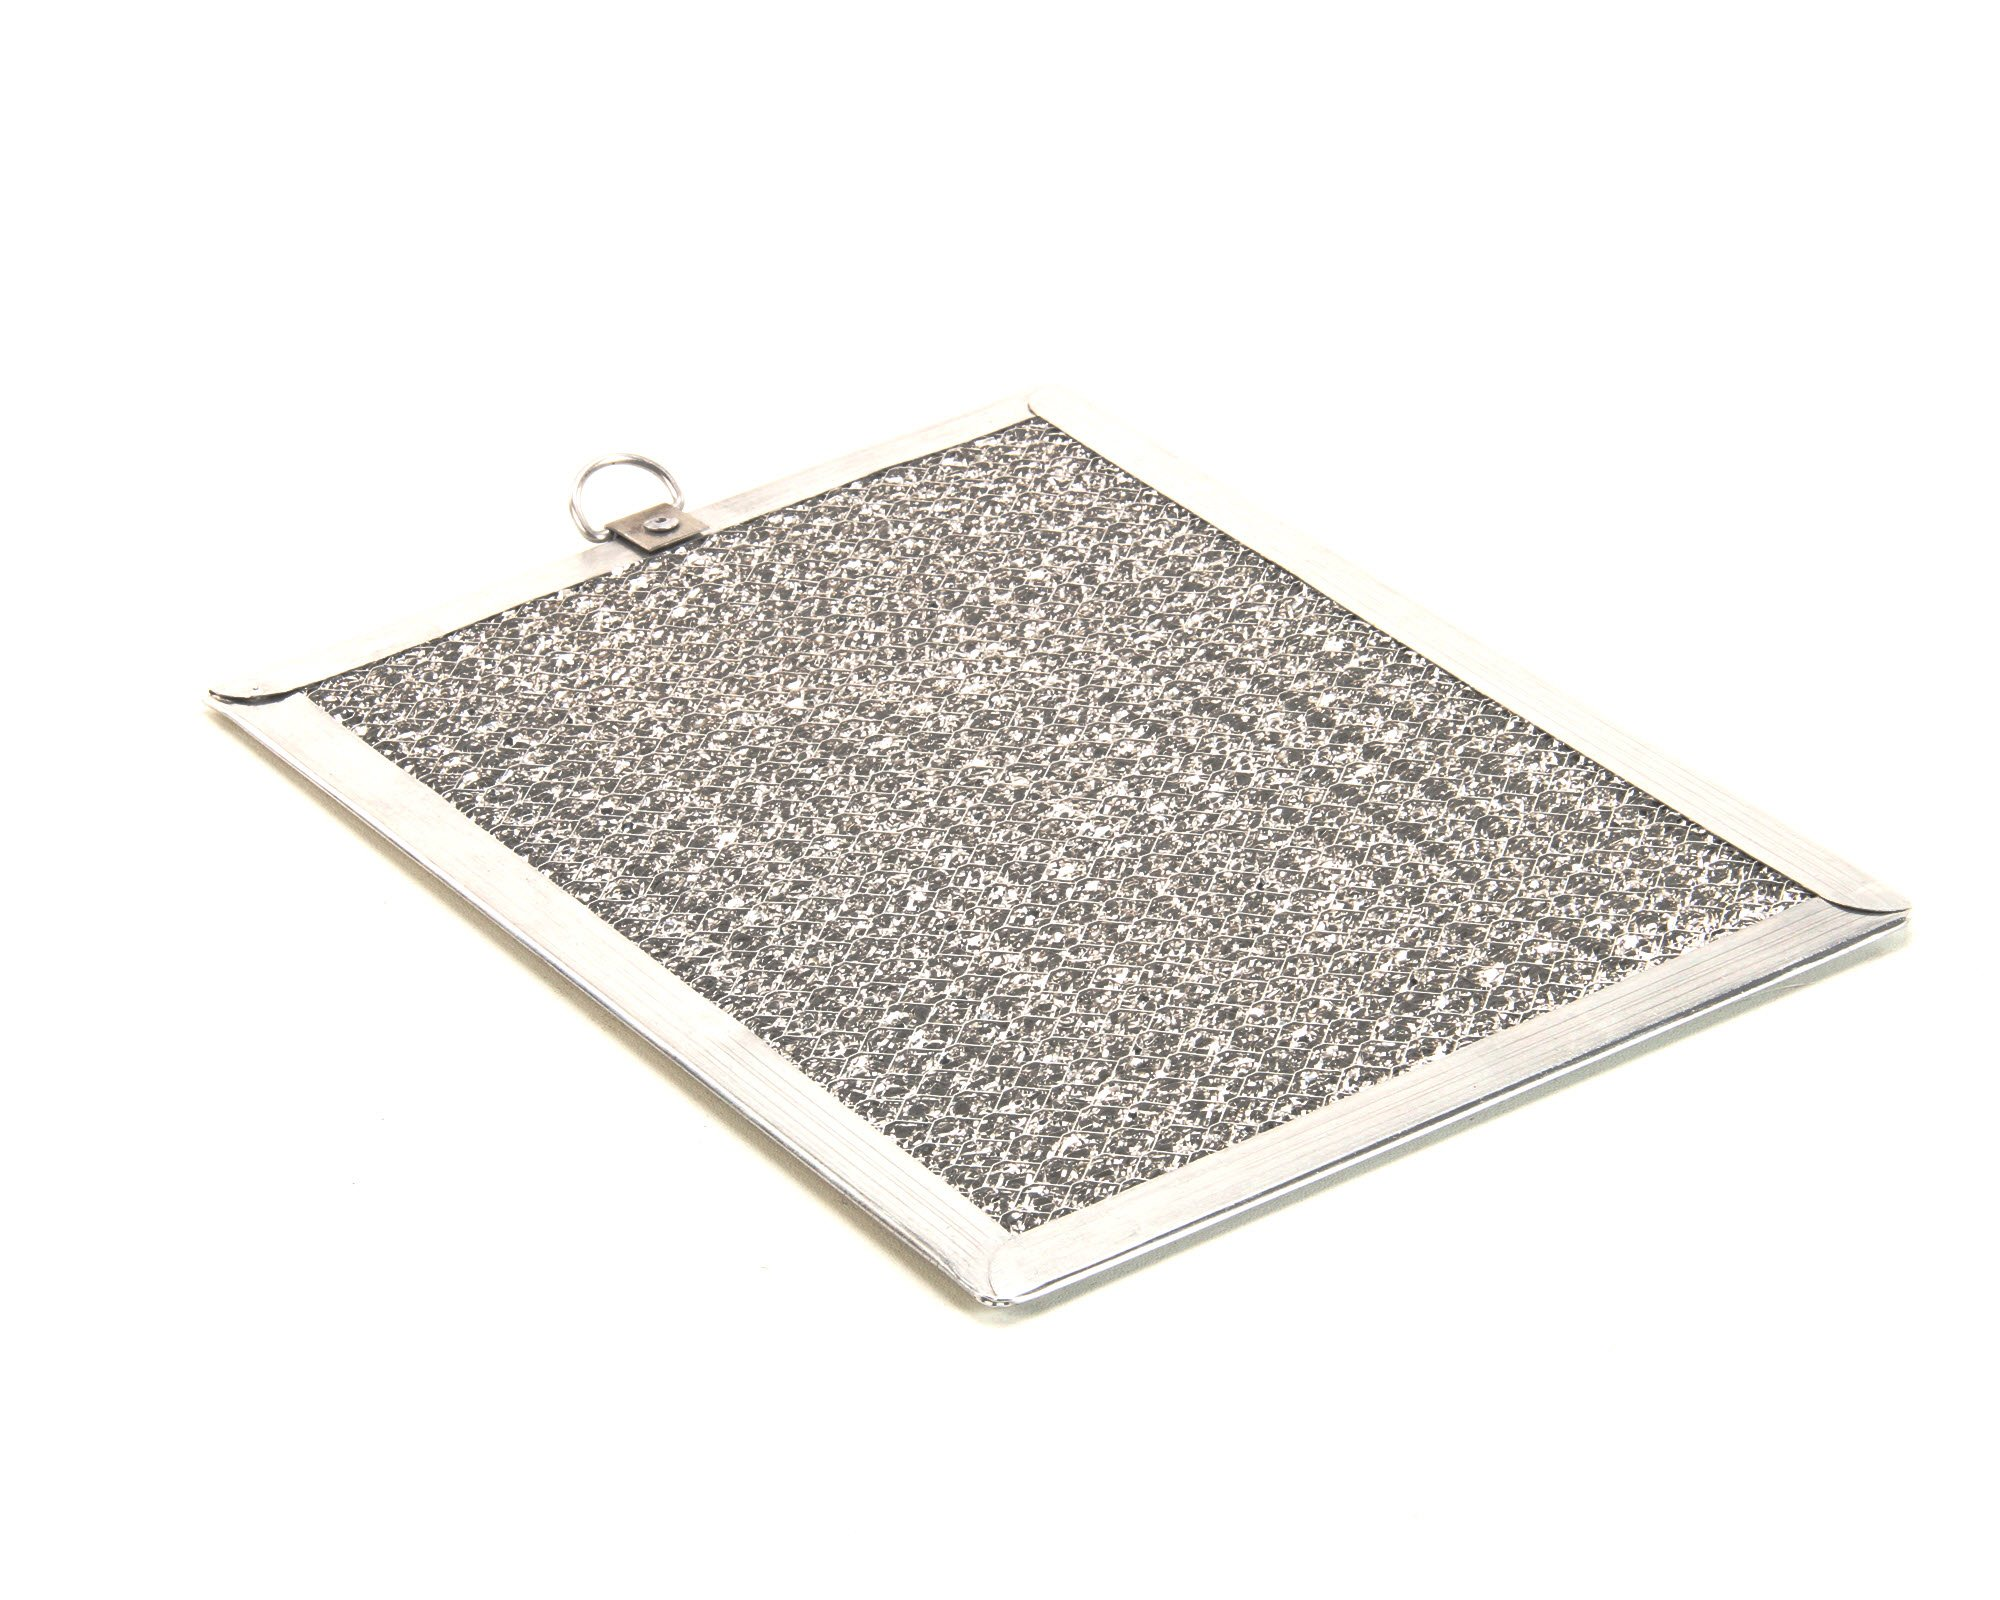 Turbochef TC3-0224 Grease Filter for C3 Oven, 7'' Width, 9.25'' Length